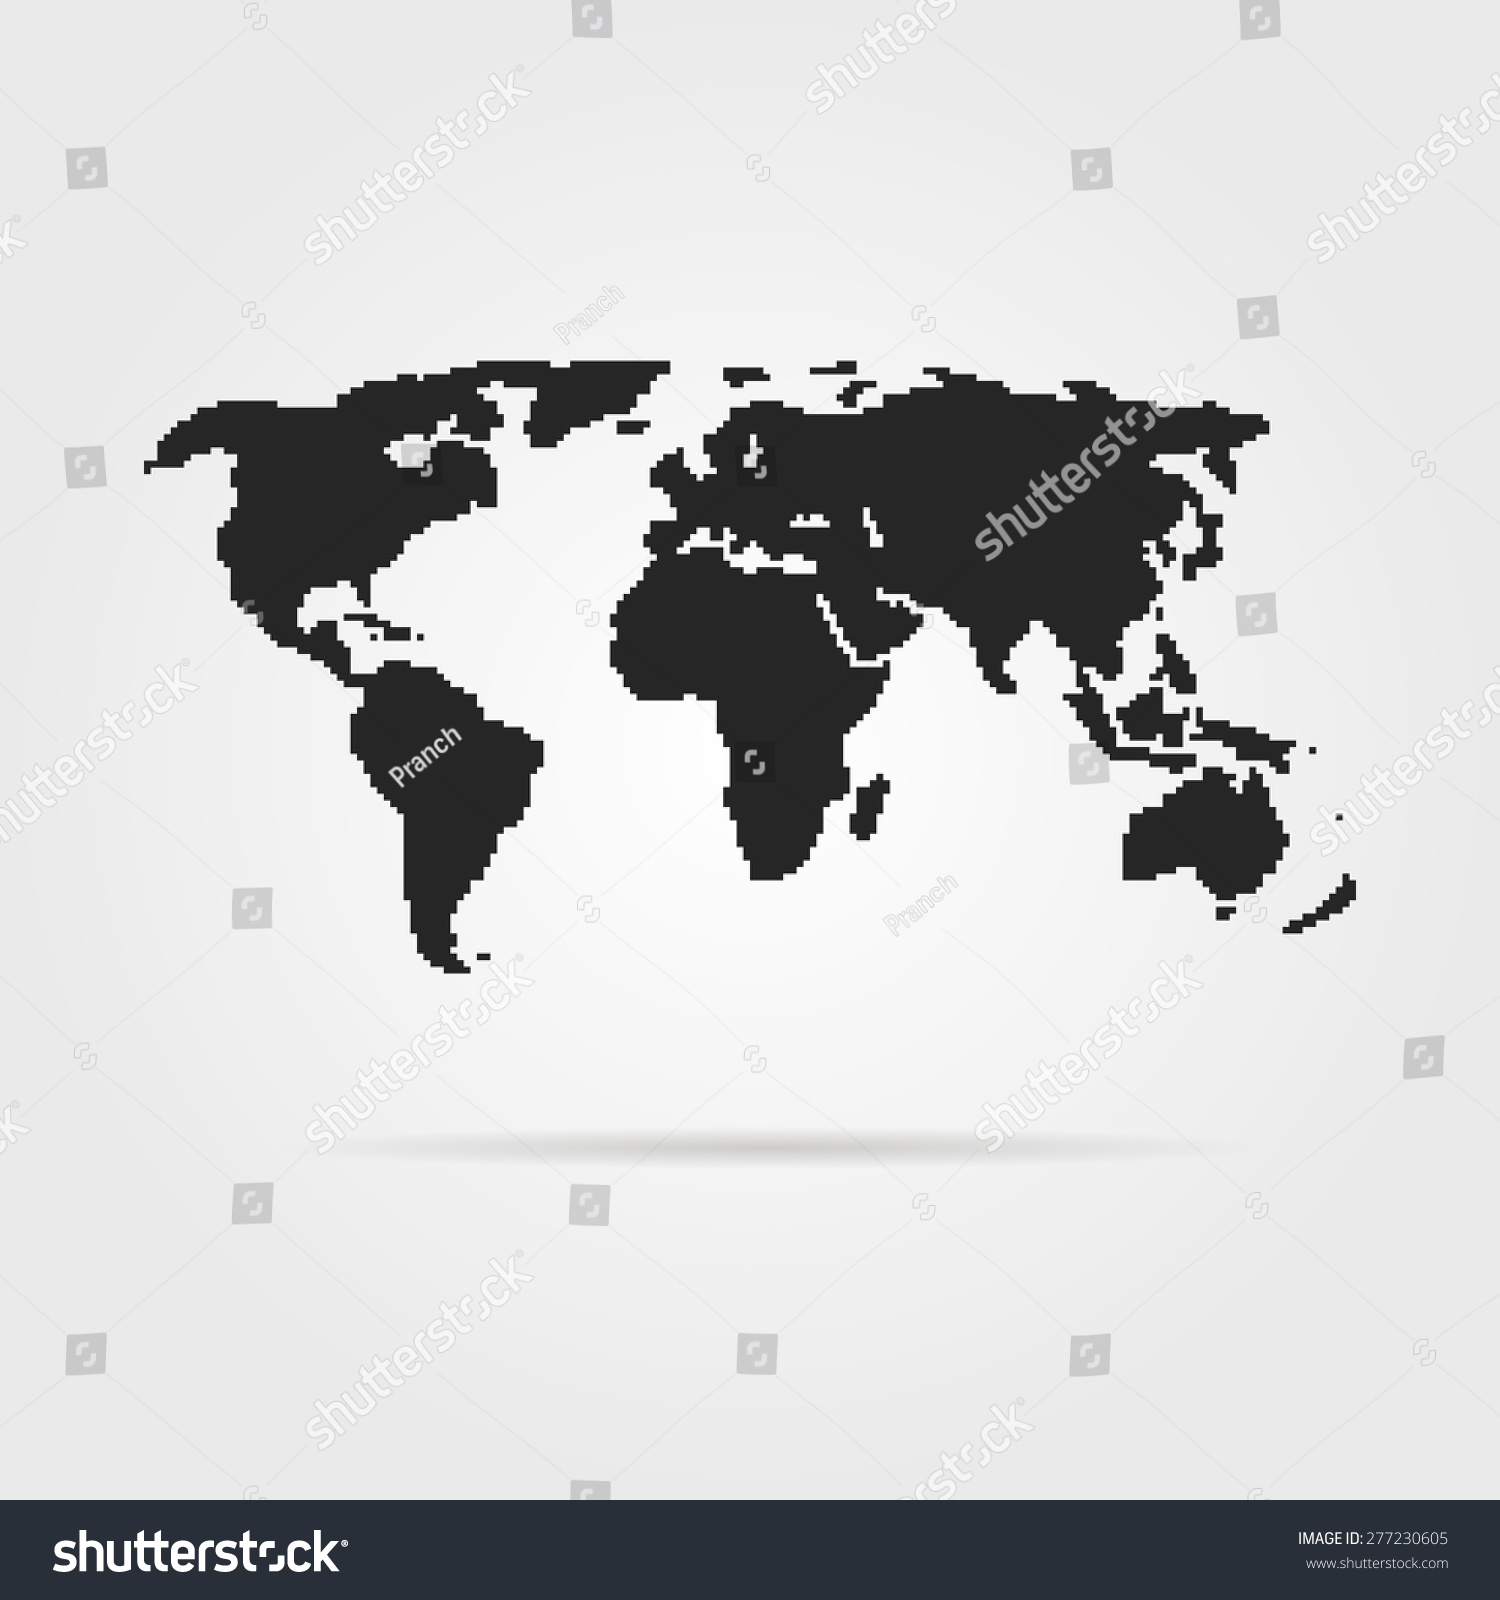 Black pixel art world map shadow vectores en stock 277230605 black pixel art world map with shadow concept of 8bit videogame graphic wallpaper gumiabroncs Image collections